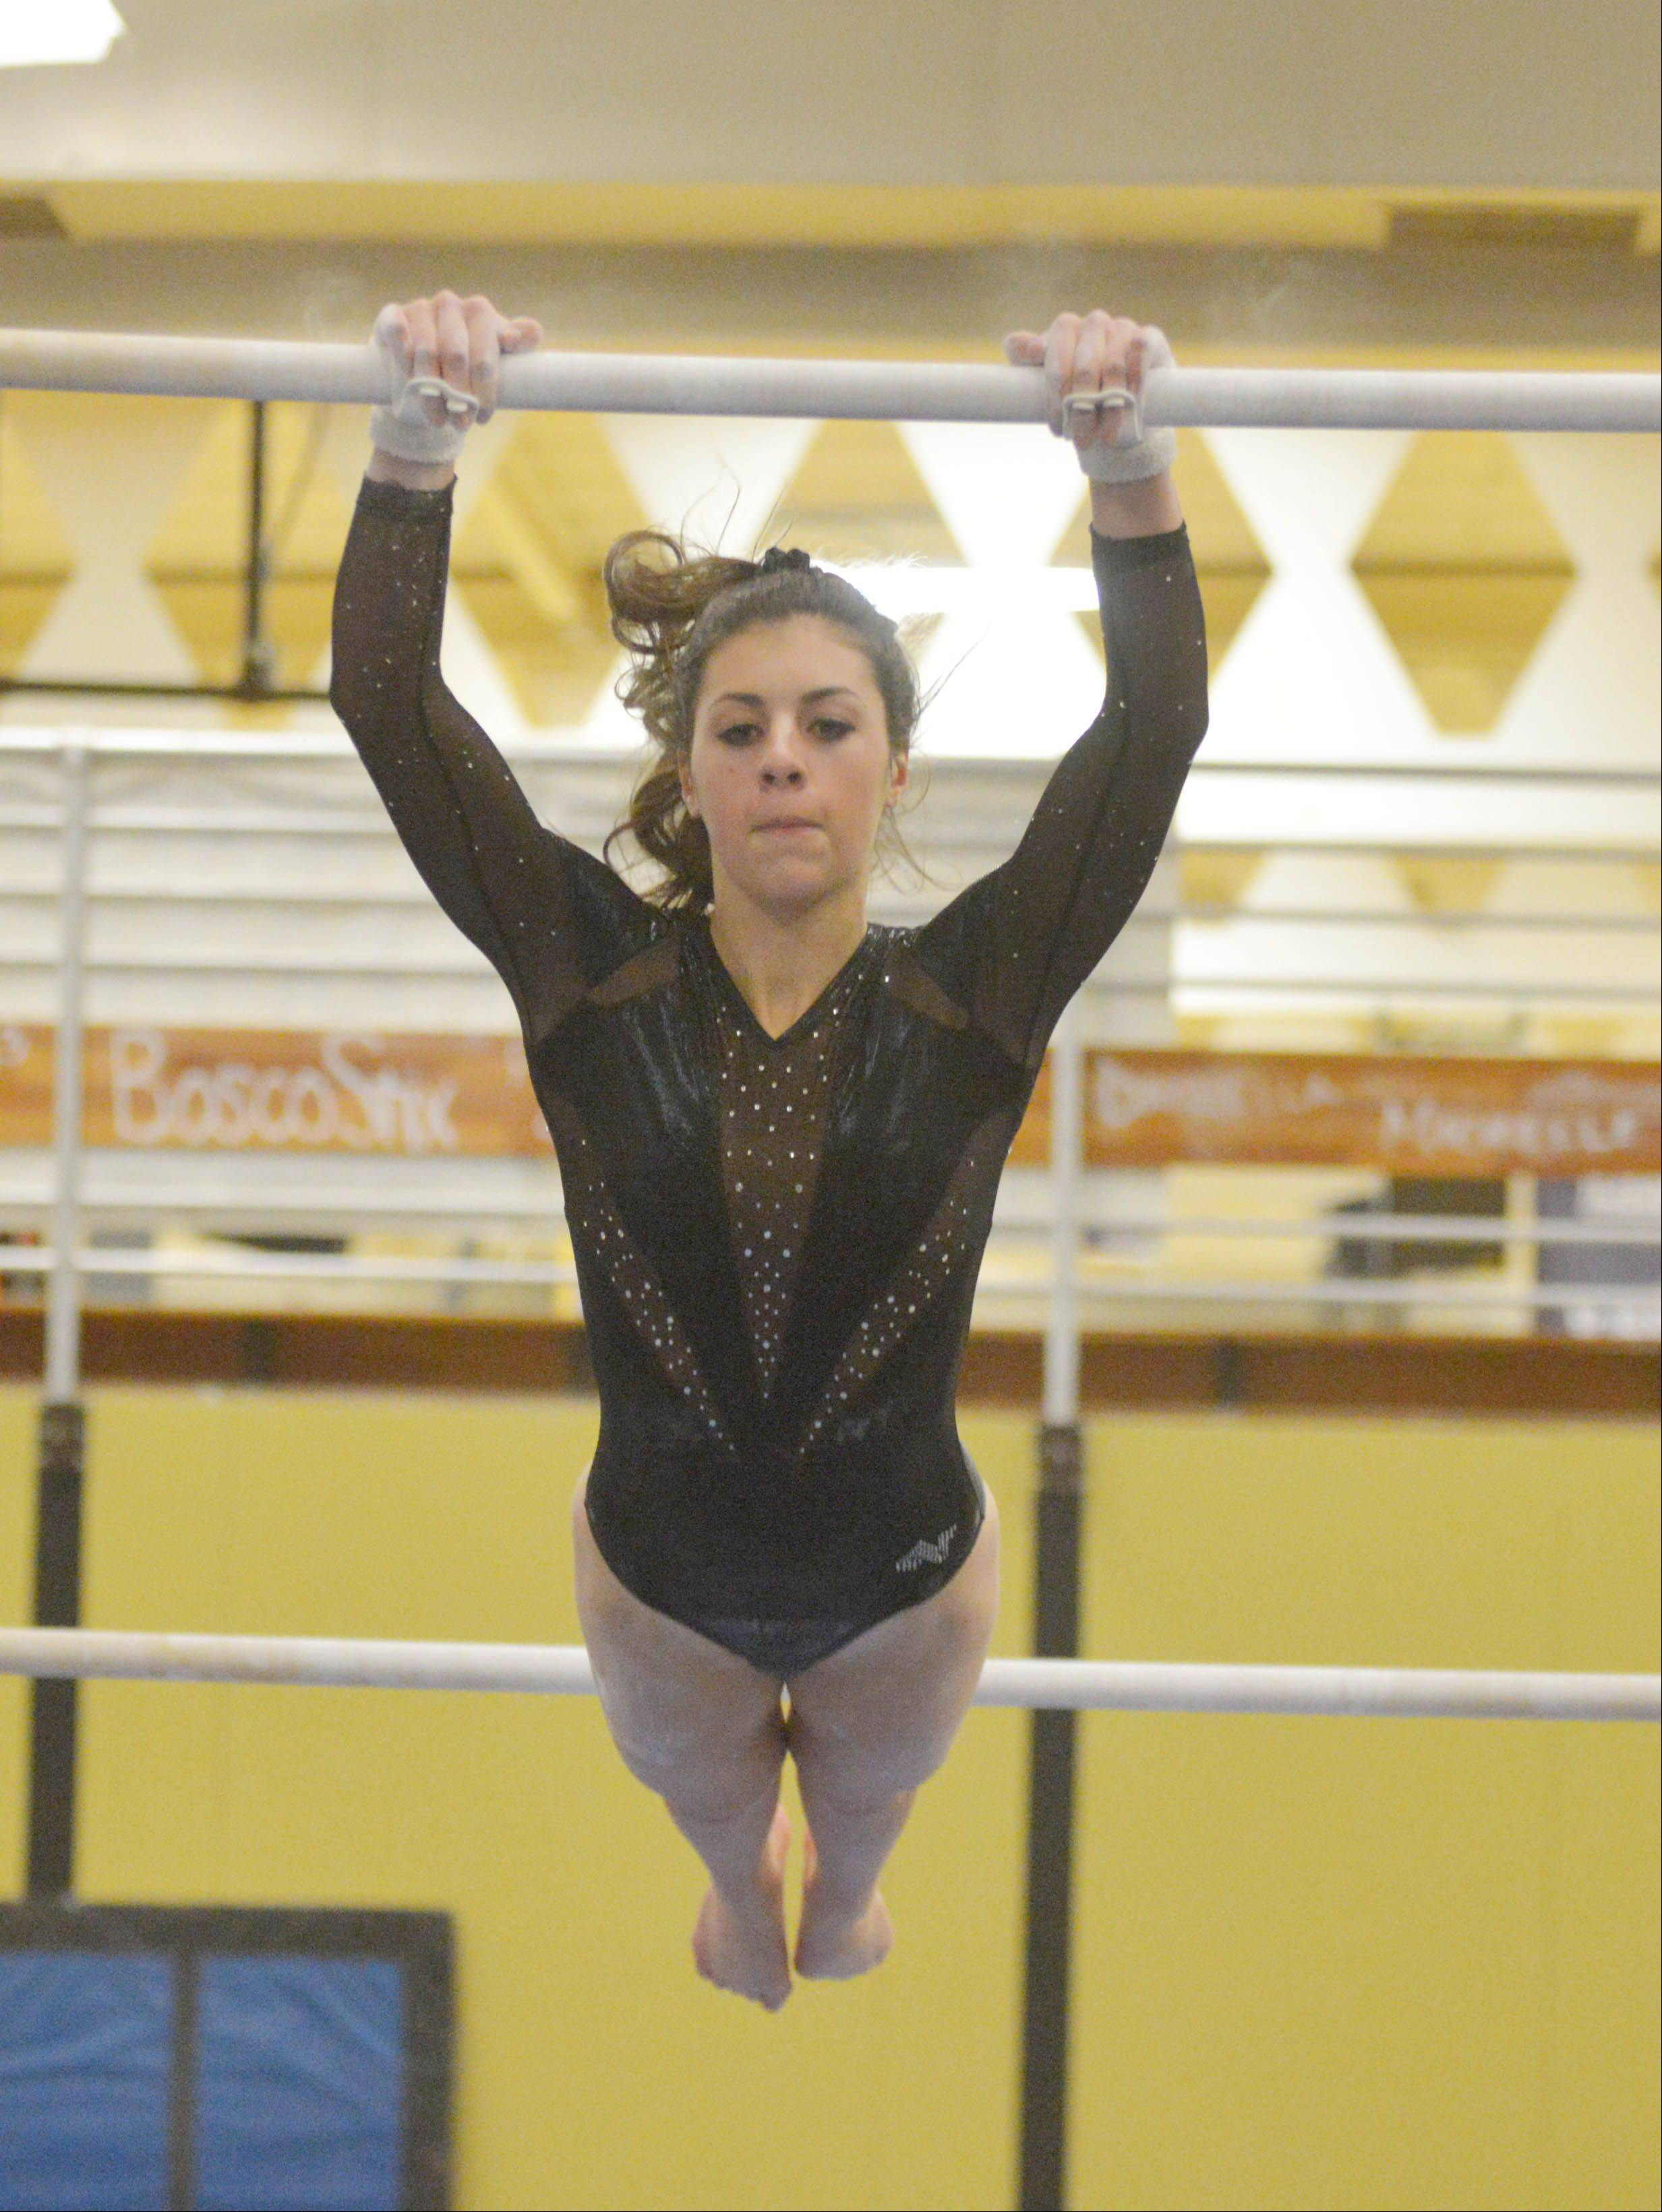 Courtney Buoy of St. Charles co-op on the bars during the St. Charles co-op at Glenbard North girls gymnastics meet Wednesday.